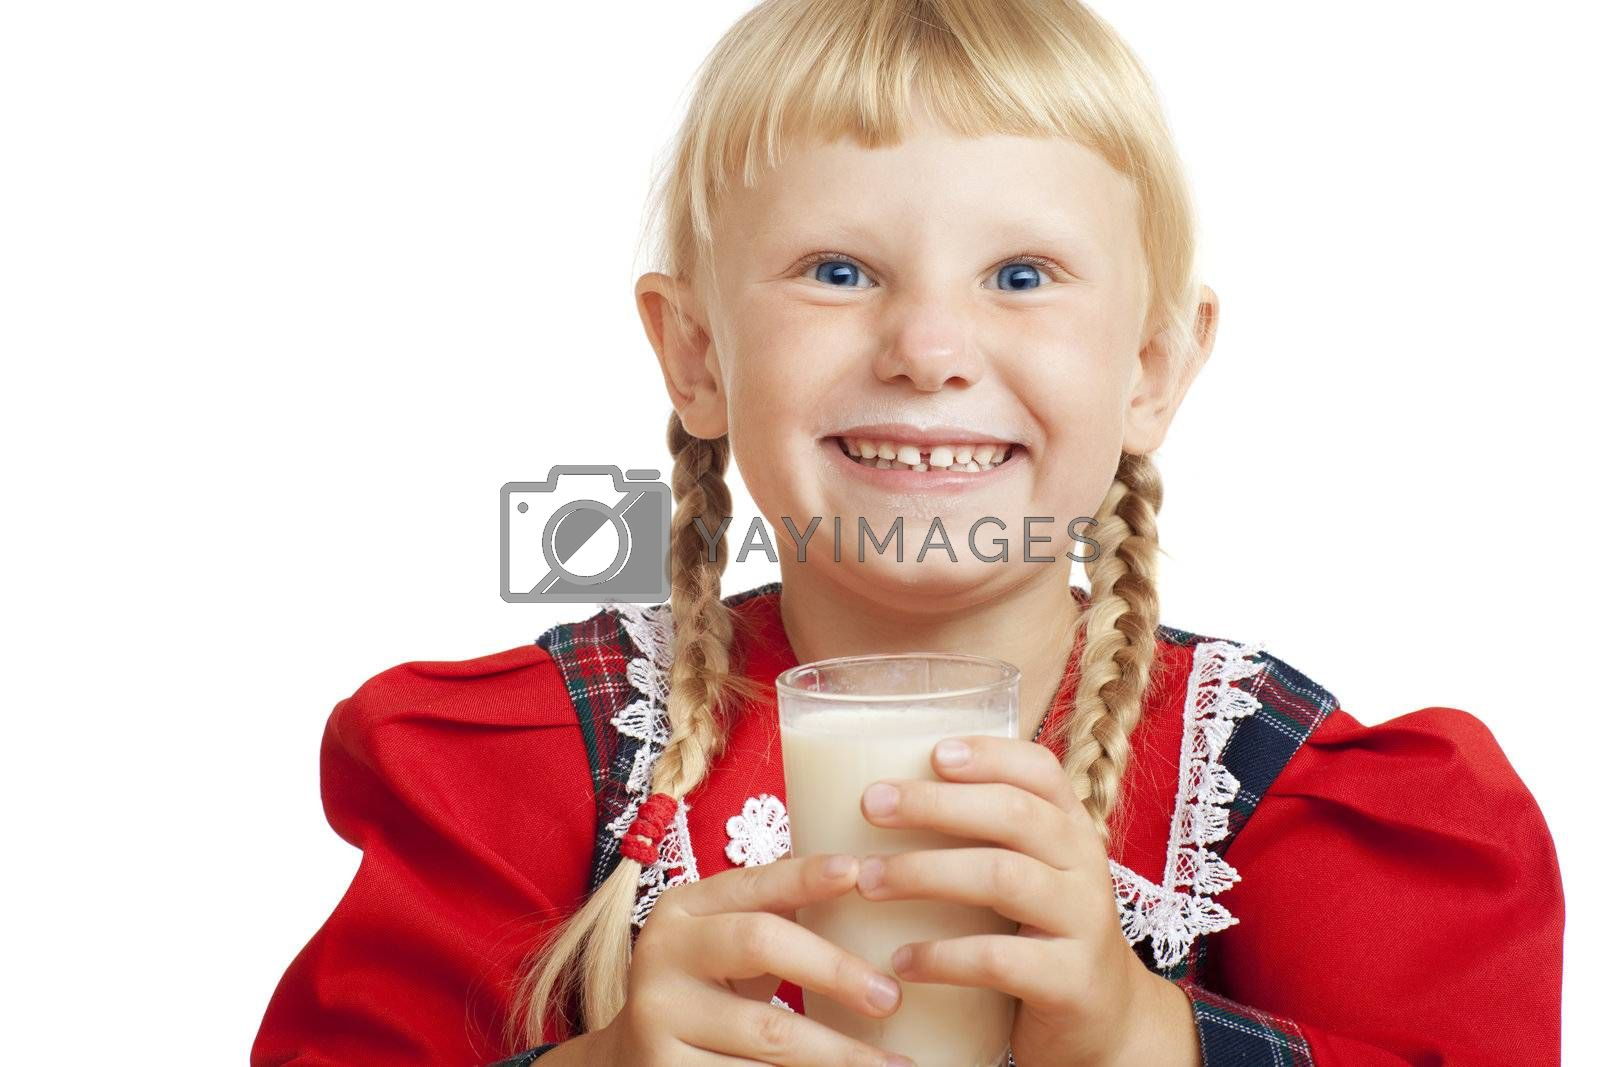 girl with milk by vsurkov